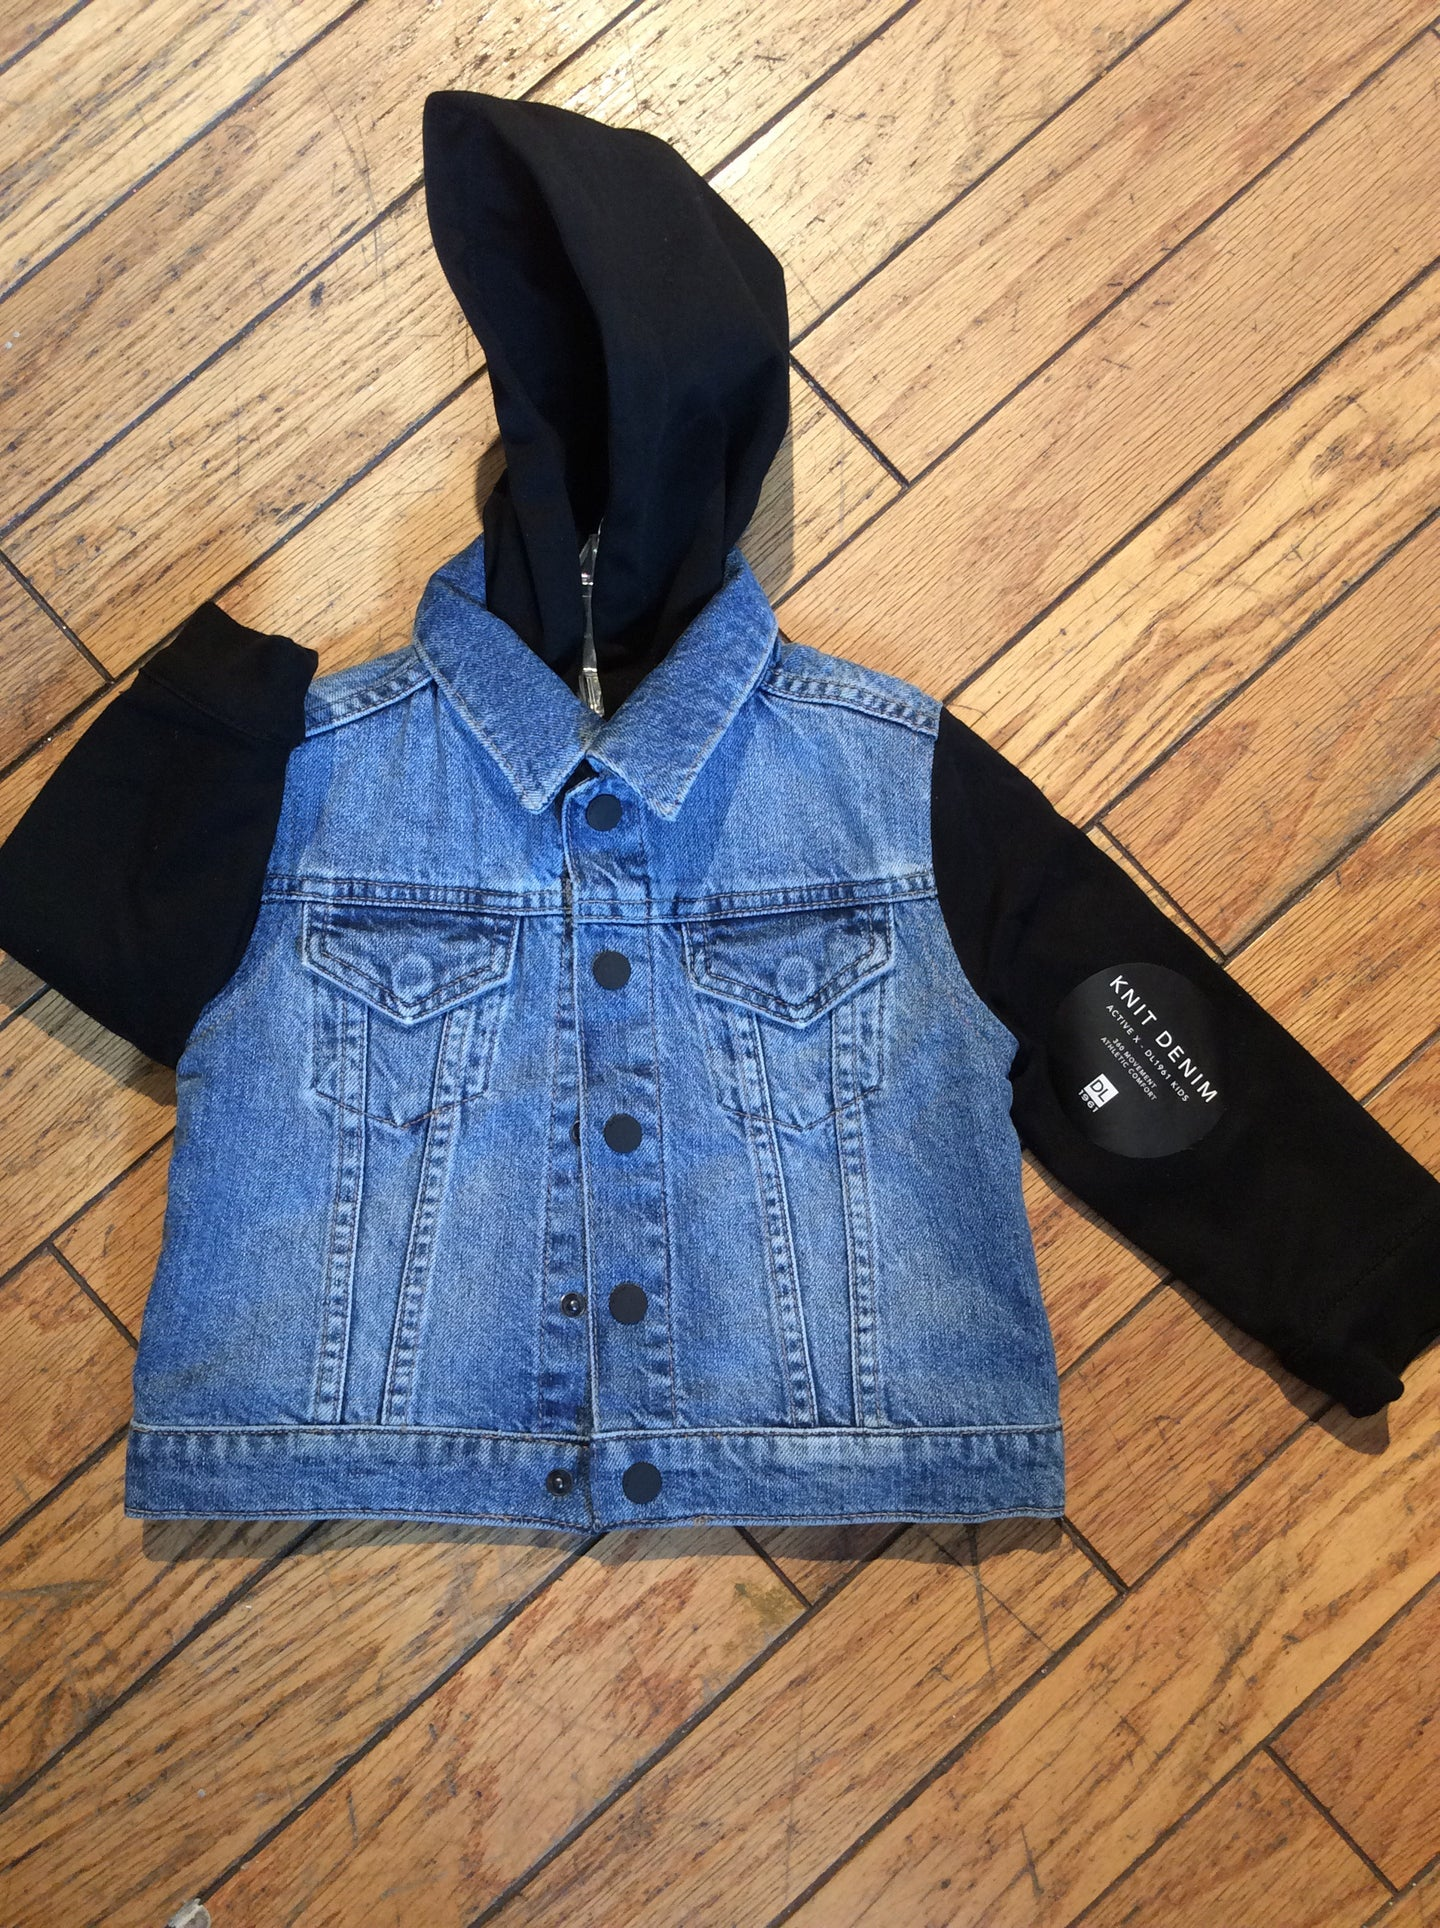 Denim jacket with black hoodie